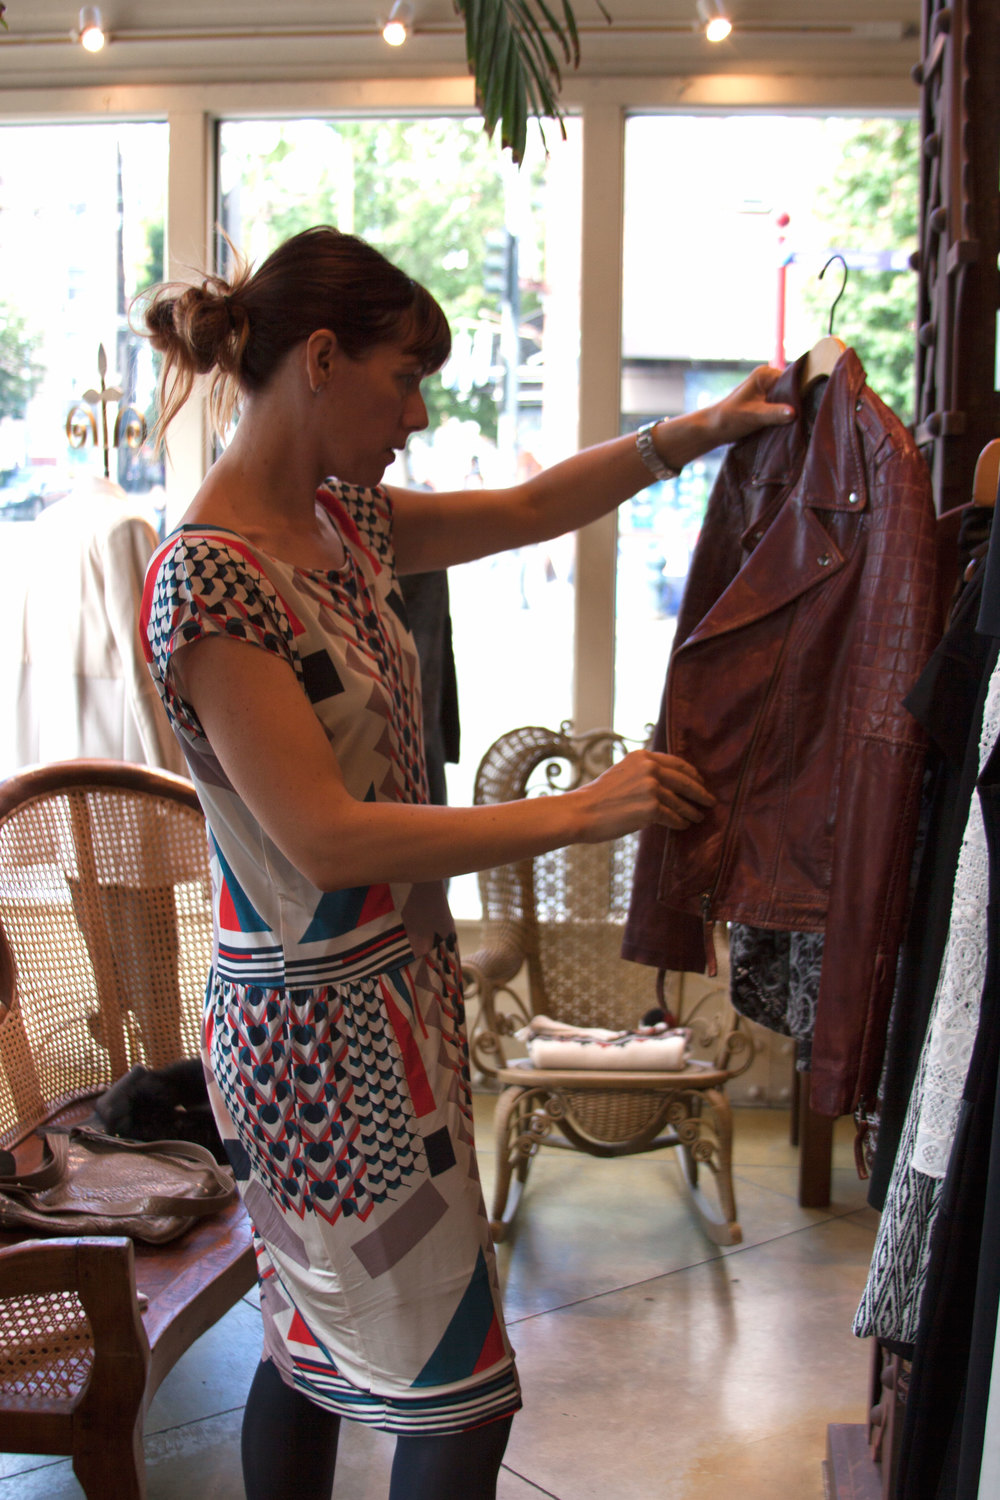 Finding JUST the right thing at local boutique Alhambra. Photography by Selena Kearney.